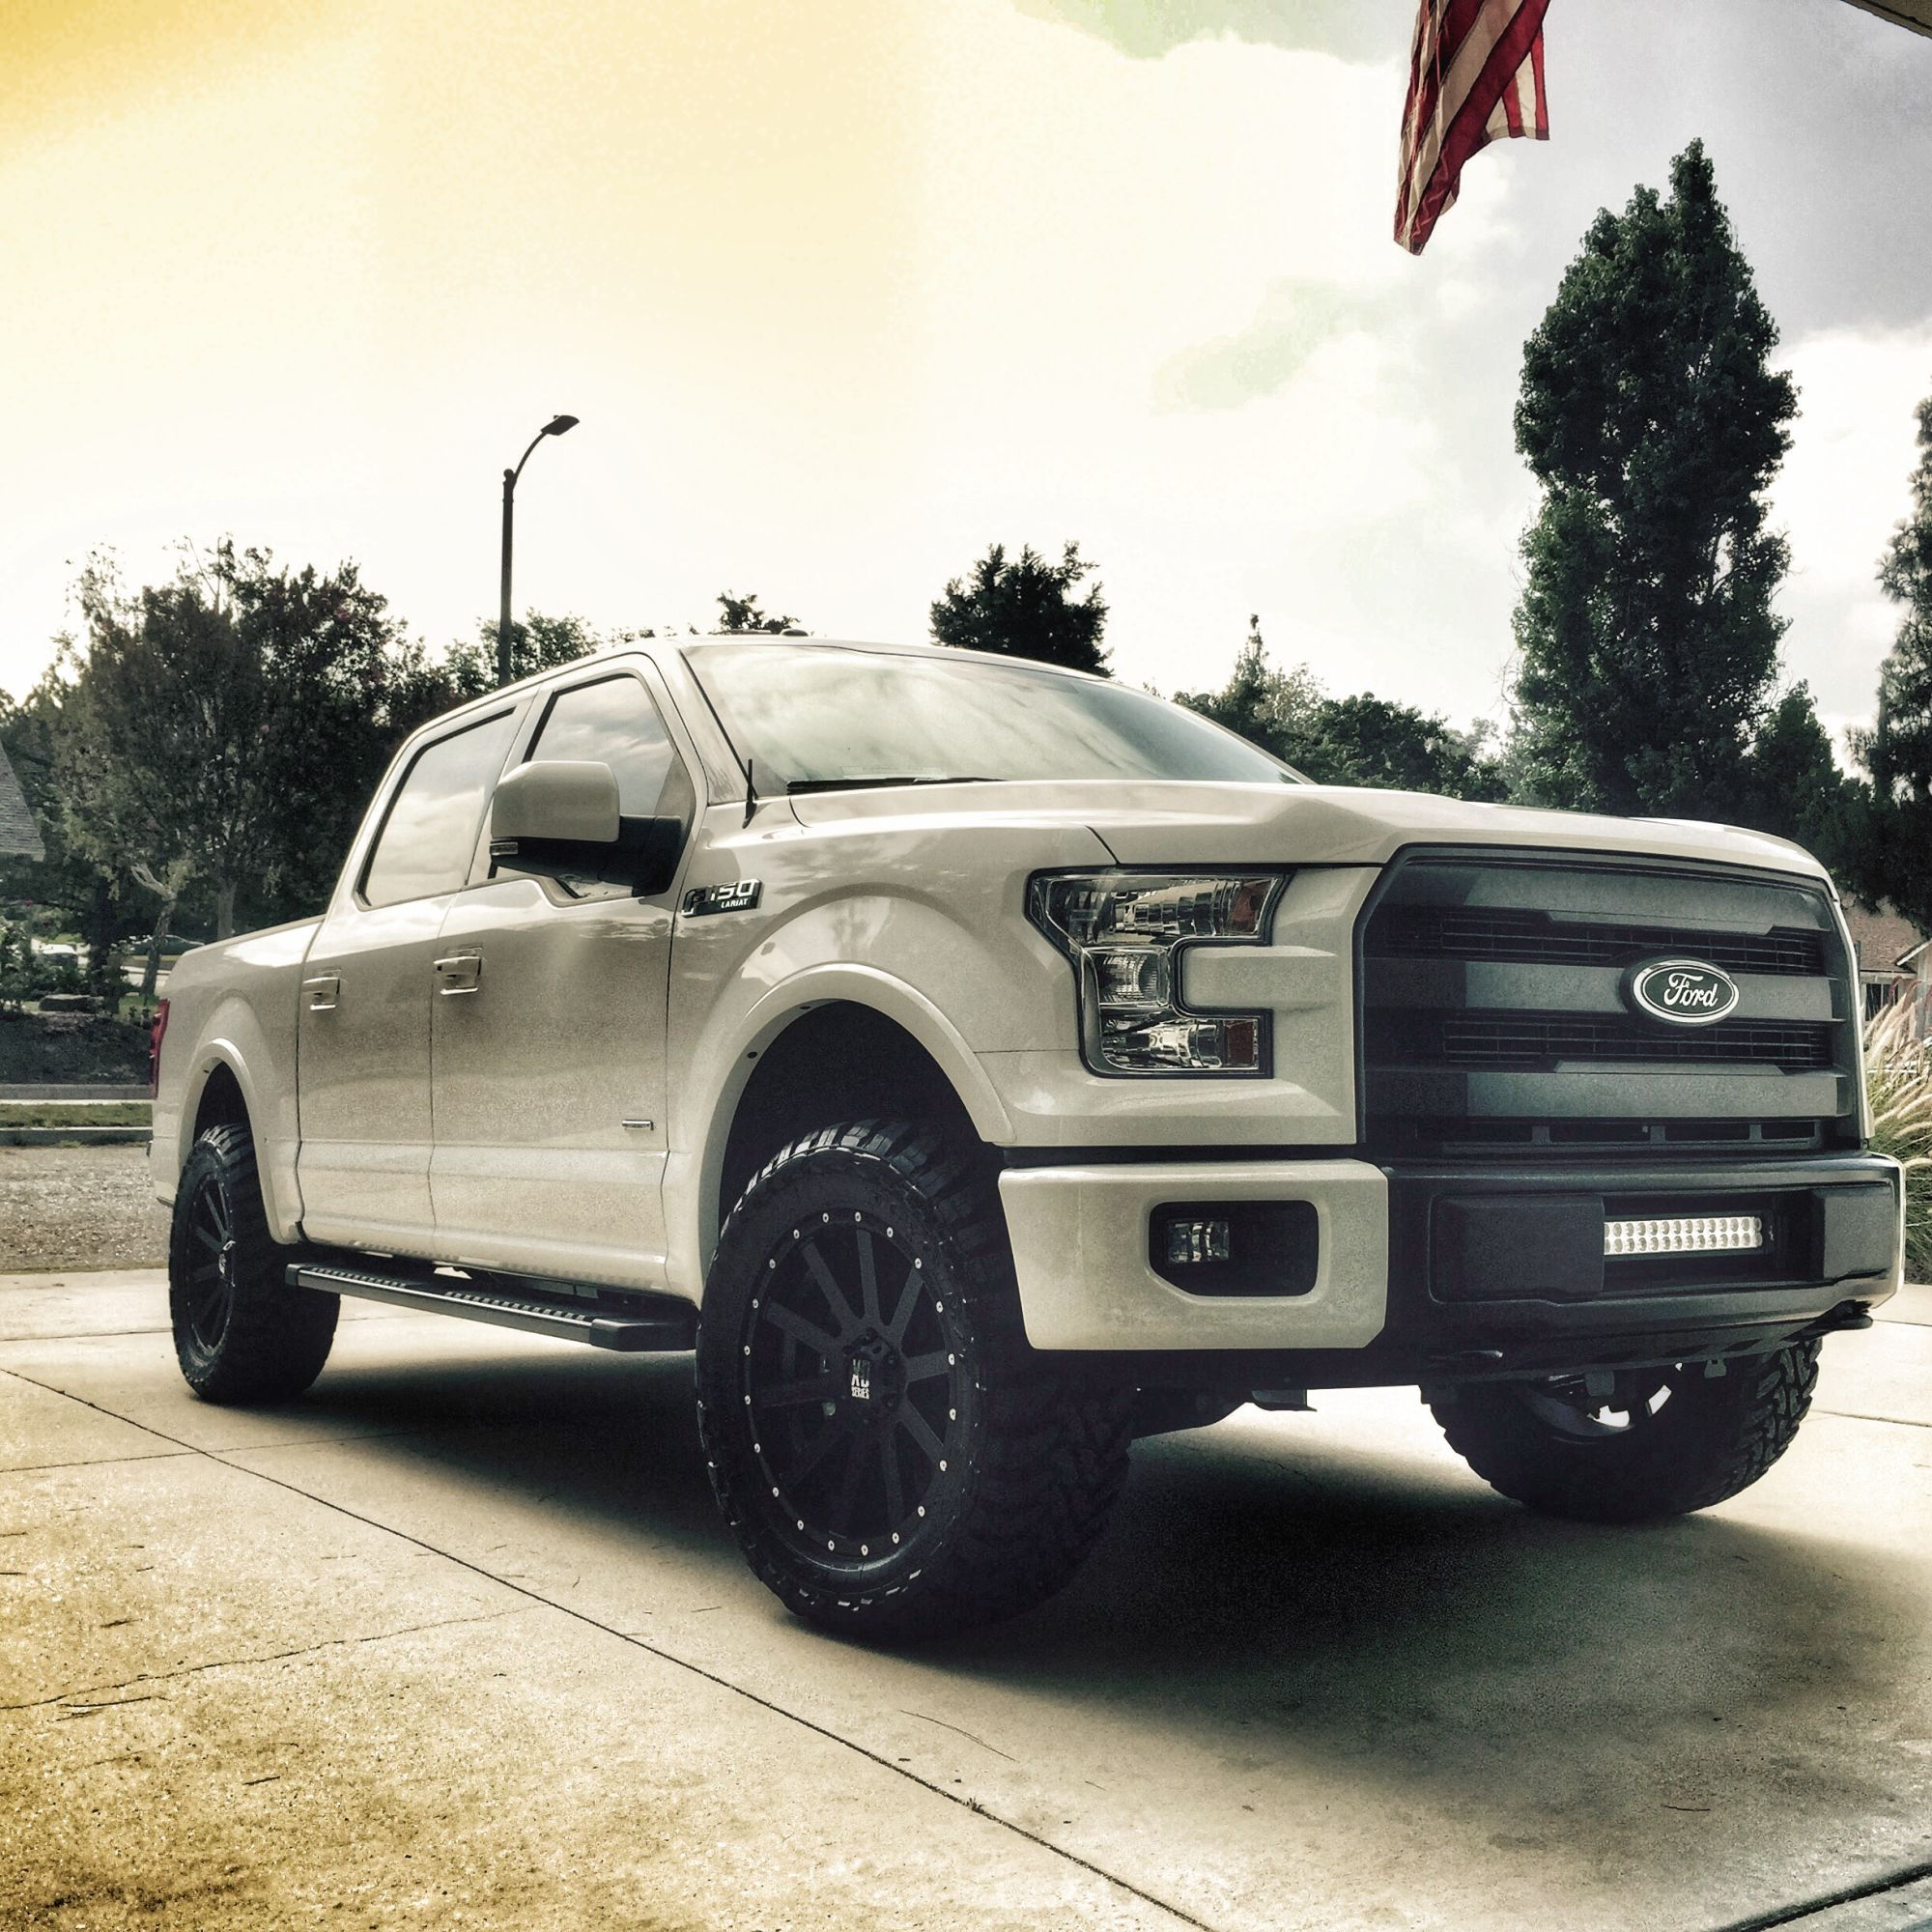 2015 f 150 lightbar in bumper ford f150 forum community of ford truck fans. Black Bedroom Furniture Sets. Home Design Ideas